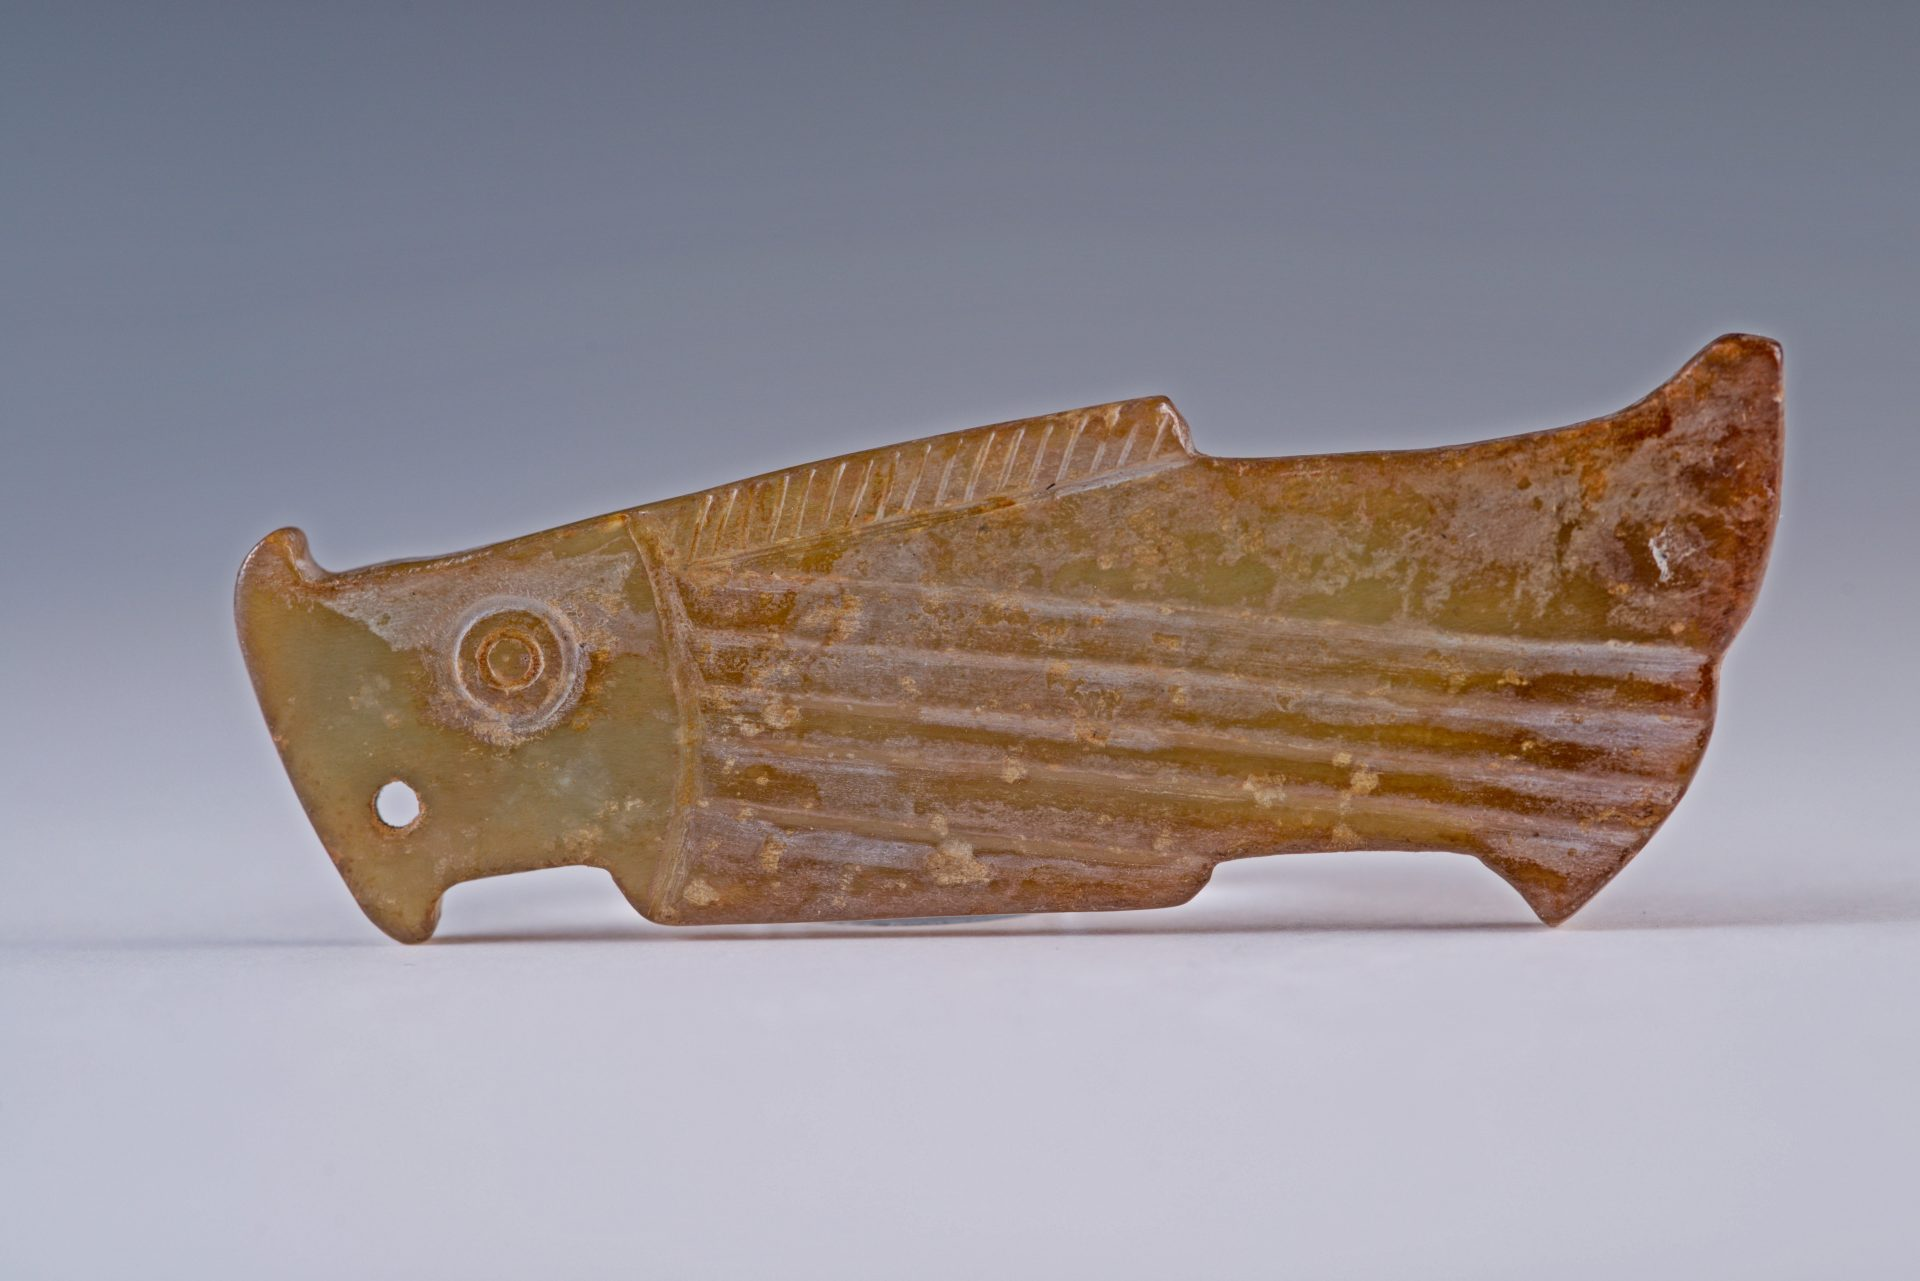 A fish jade pieces from from the Shang and Zhou Dynasties. (Image: Courtesy of Yens Charity Foundation)